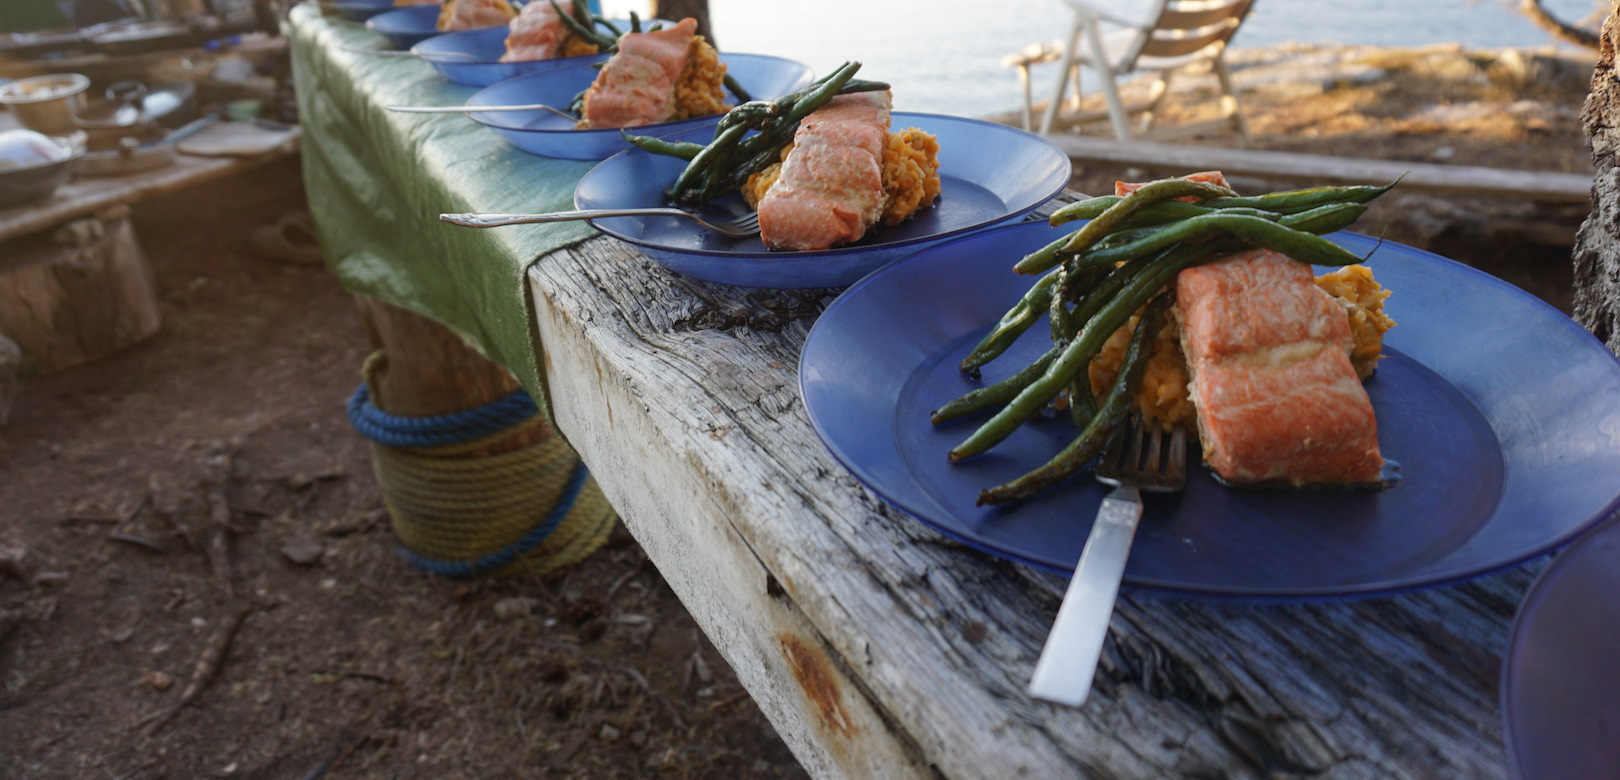 Our sea kayak expeditions serve fresh and inspiring meals despite our remote environments